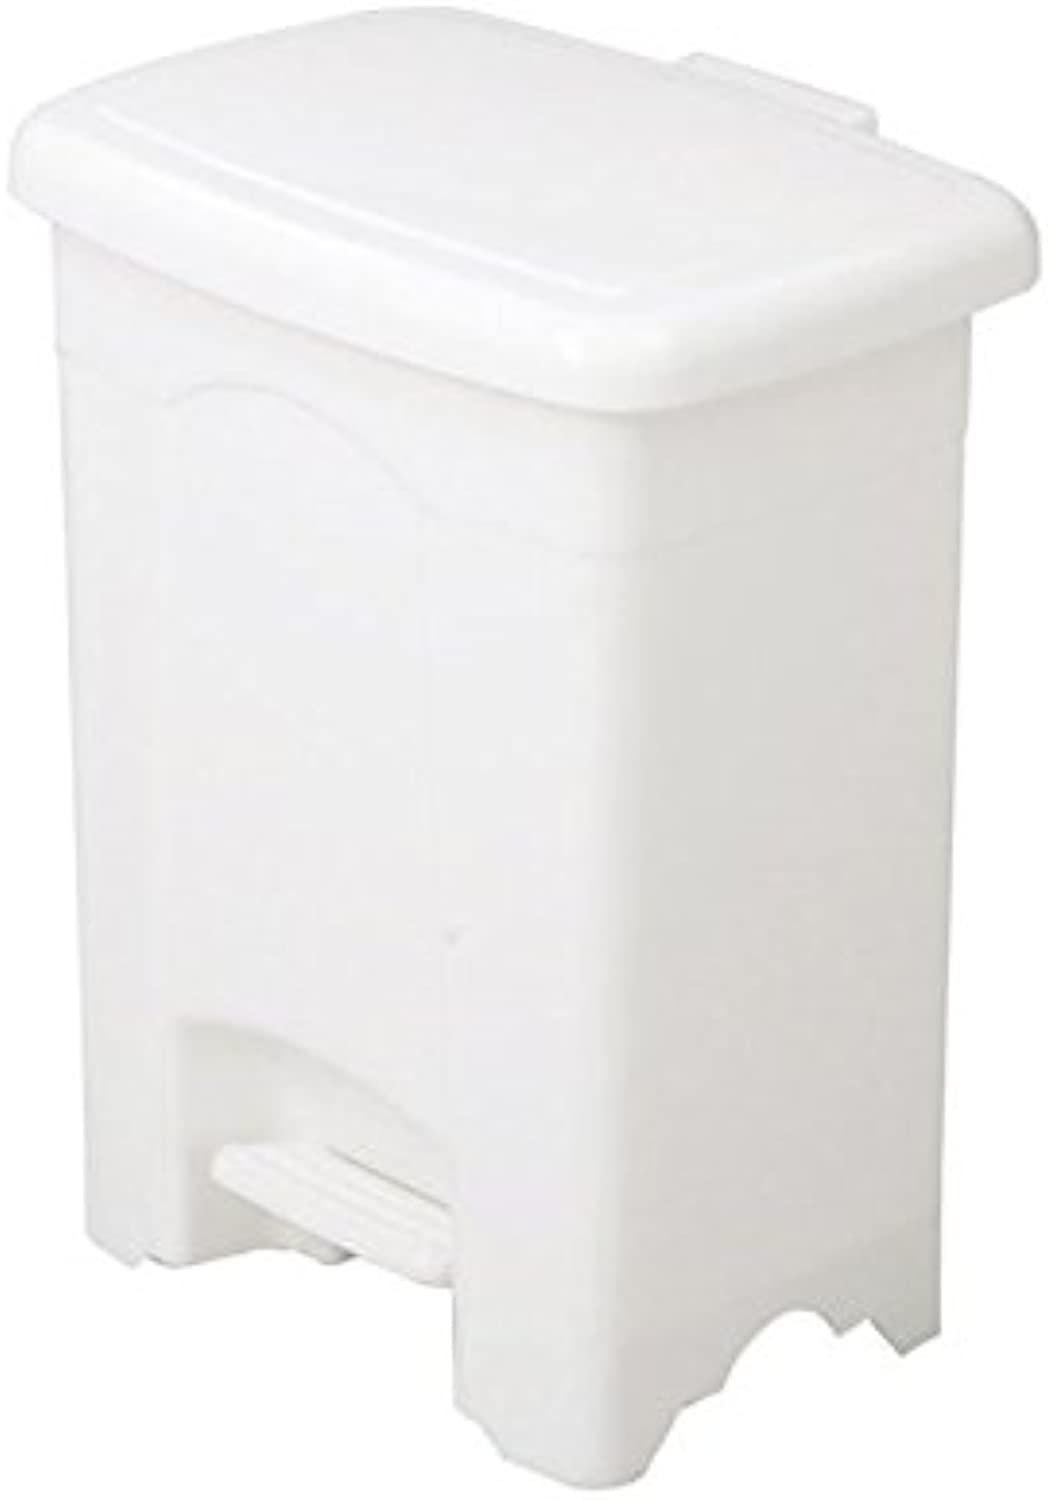 Pemberly Row White 4 Gallon Step-On Plastic Receptacle